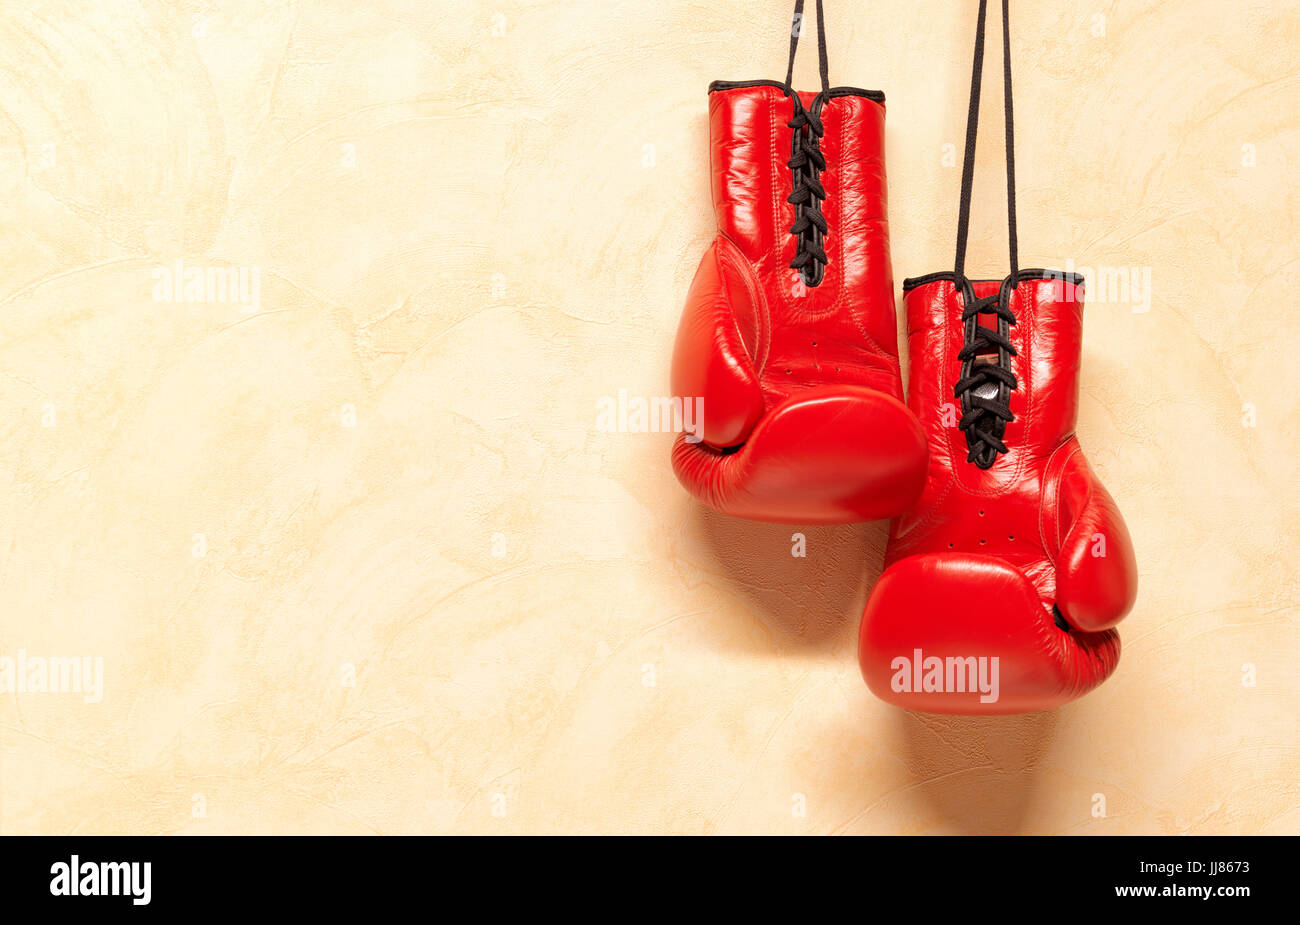 Red Boxing Gloves hanging by laces on Wall - Stock Image